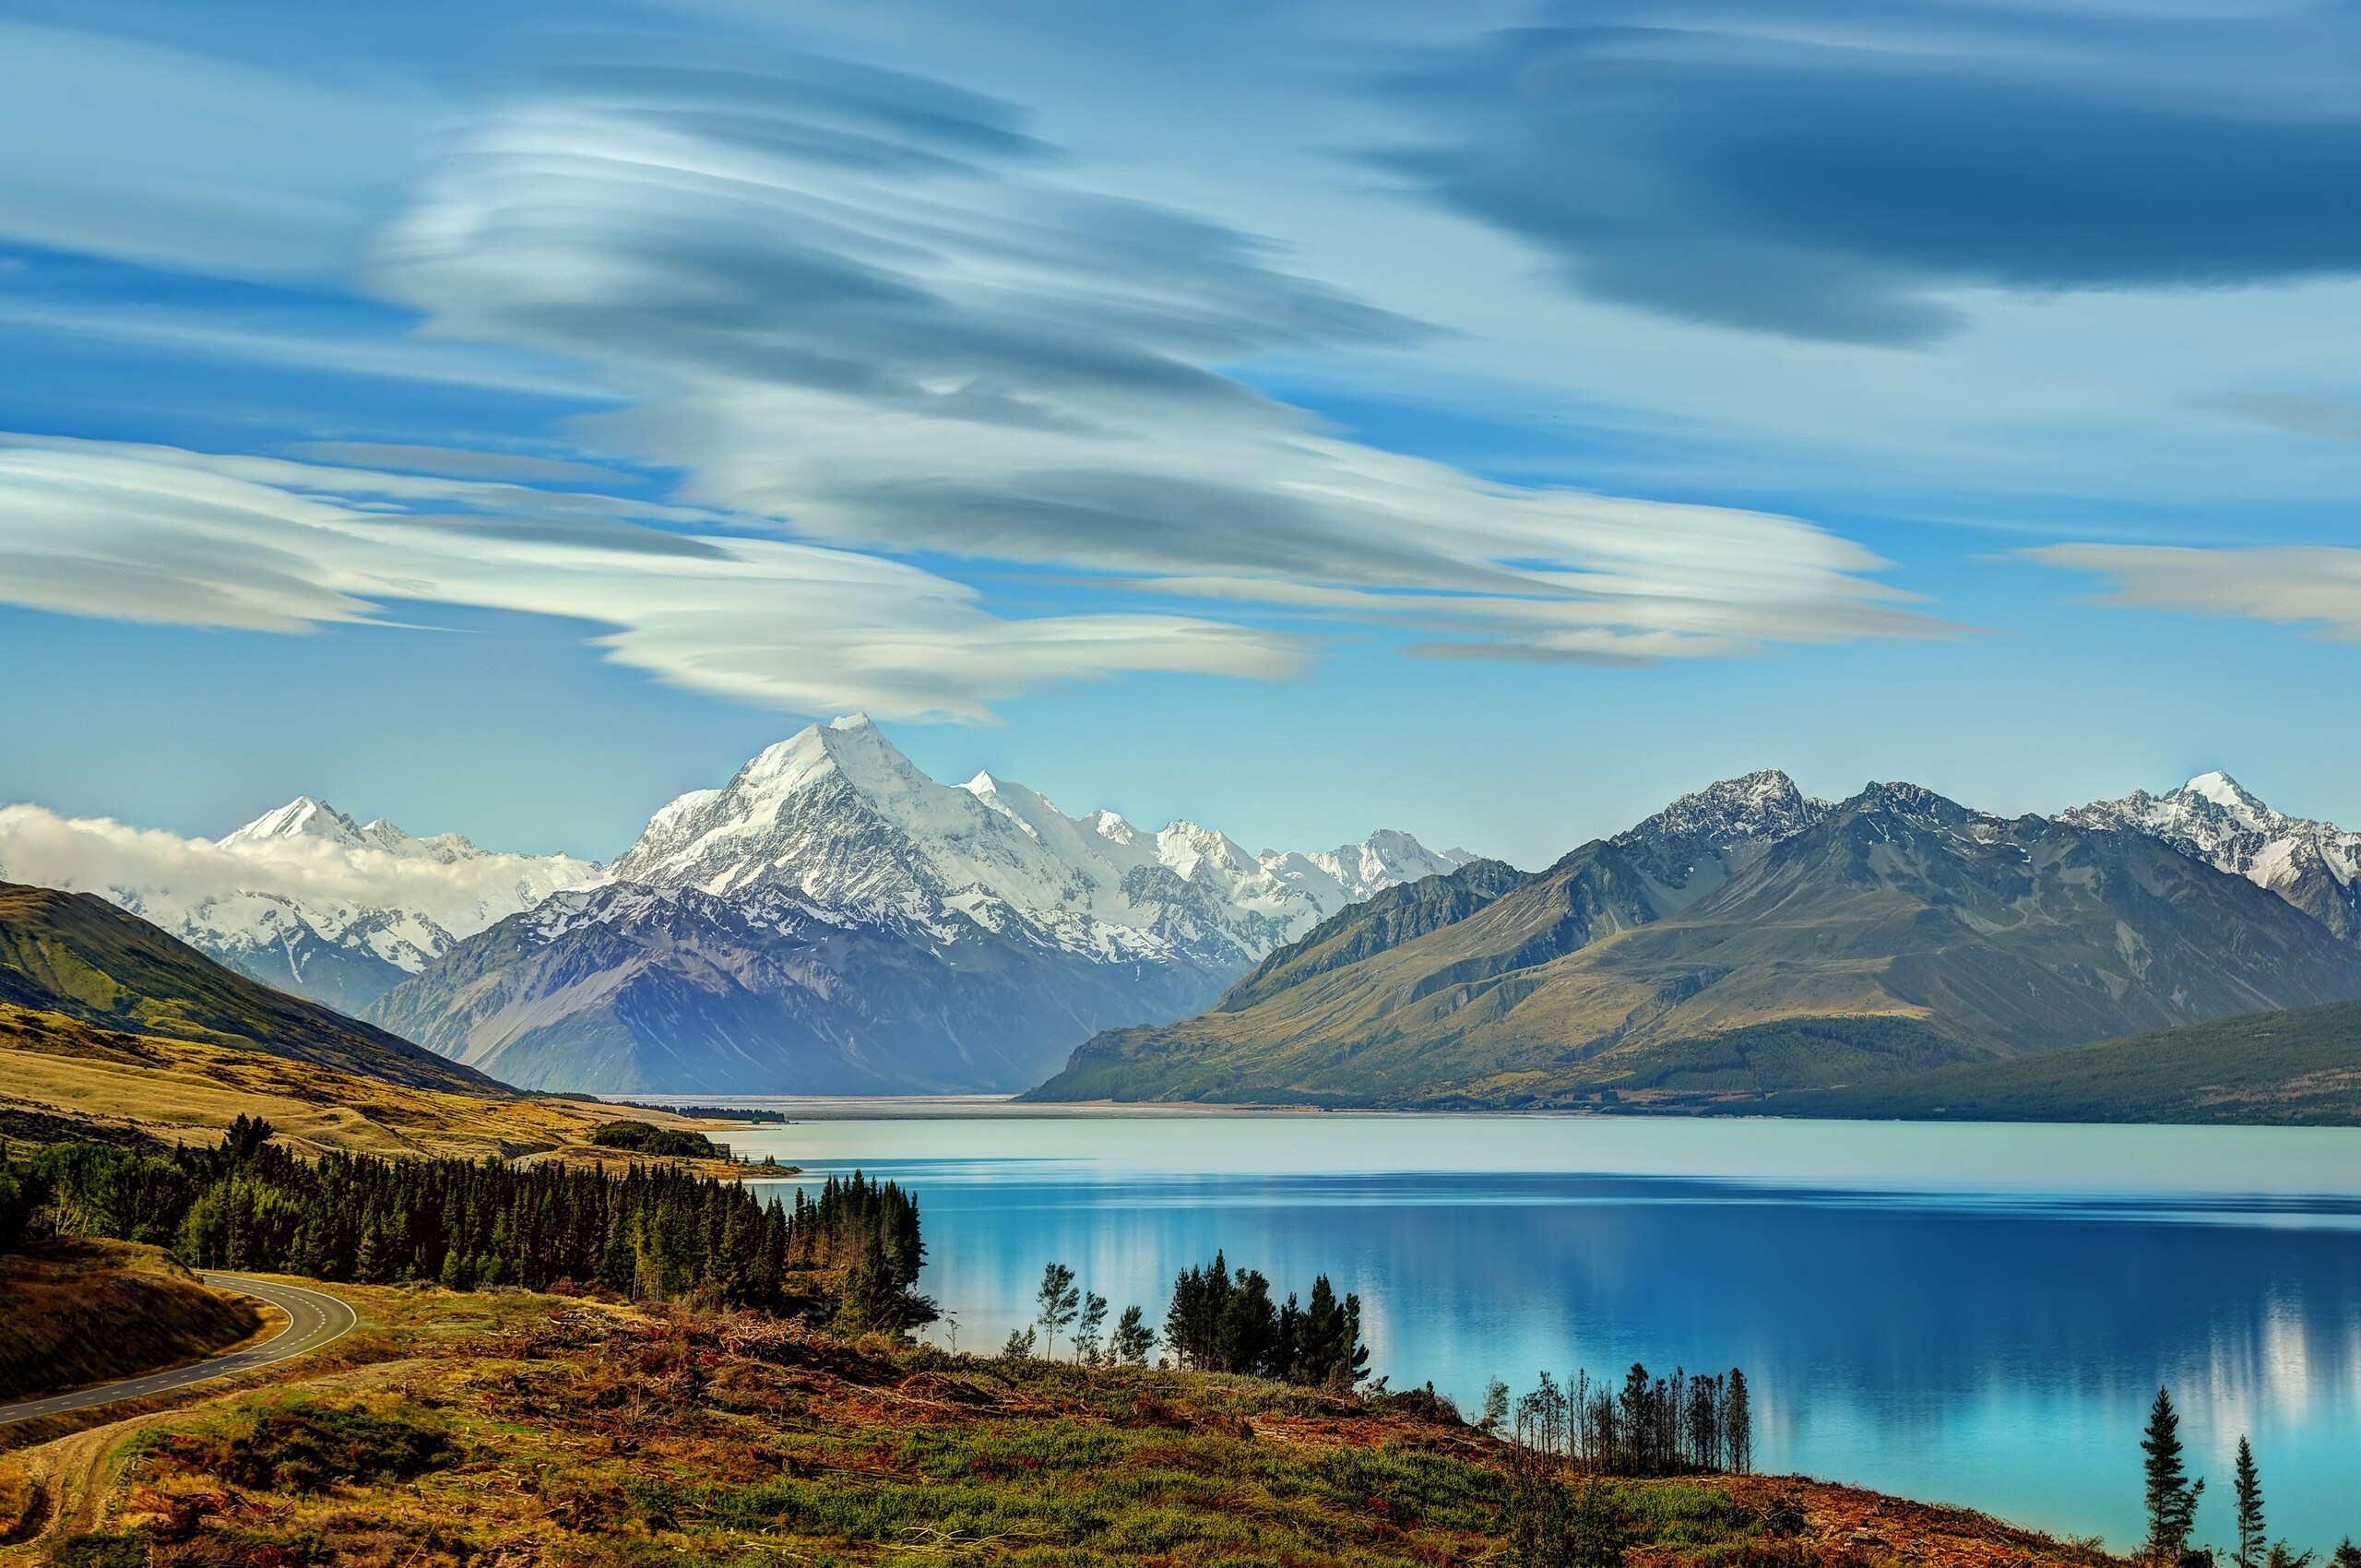 Active_Tranquility, New Zealand  № 3155700 бесплатно